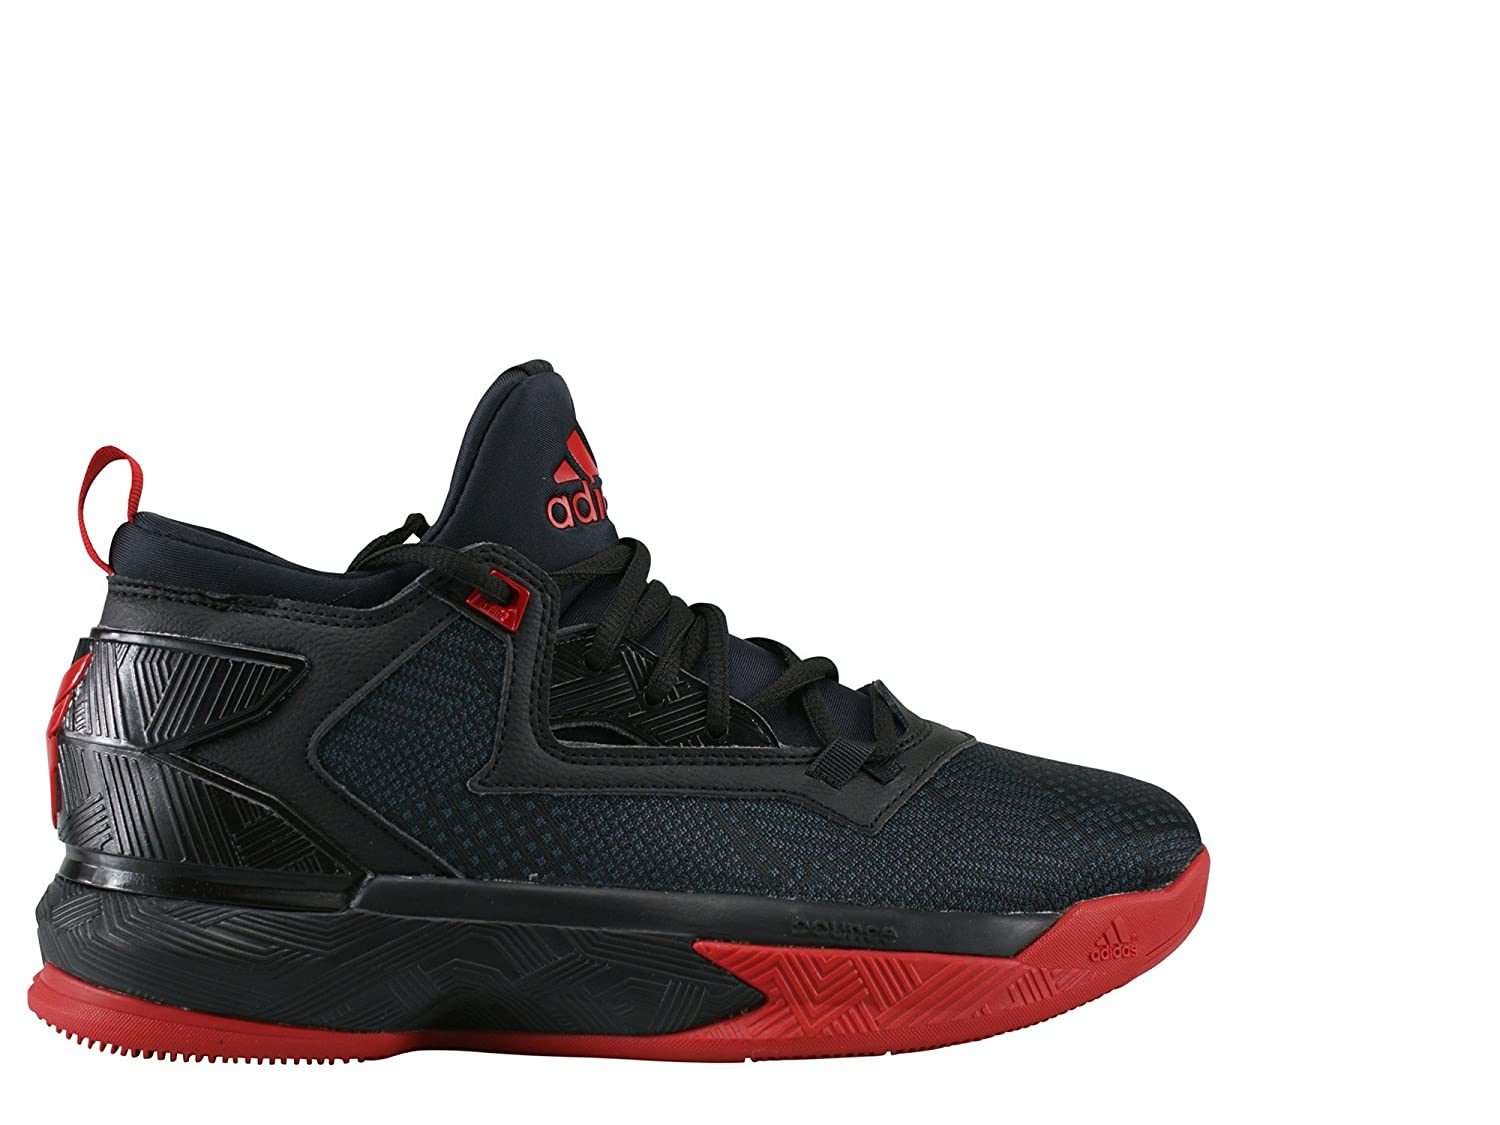 99a188d08d9d adidas - D Lillard 2.0 Shoes - Core Black - 4.5  Amazon.co.uk  Shoes   Bags